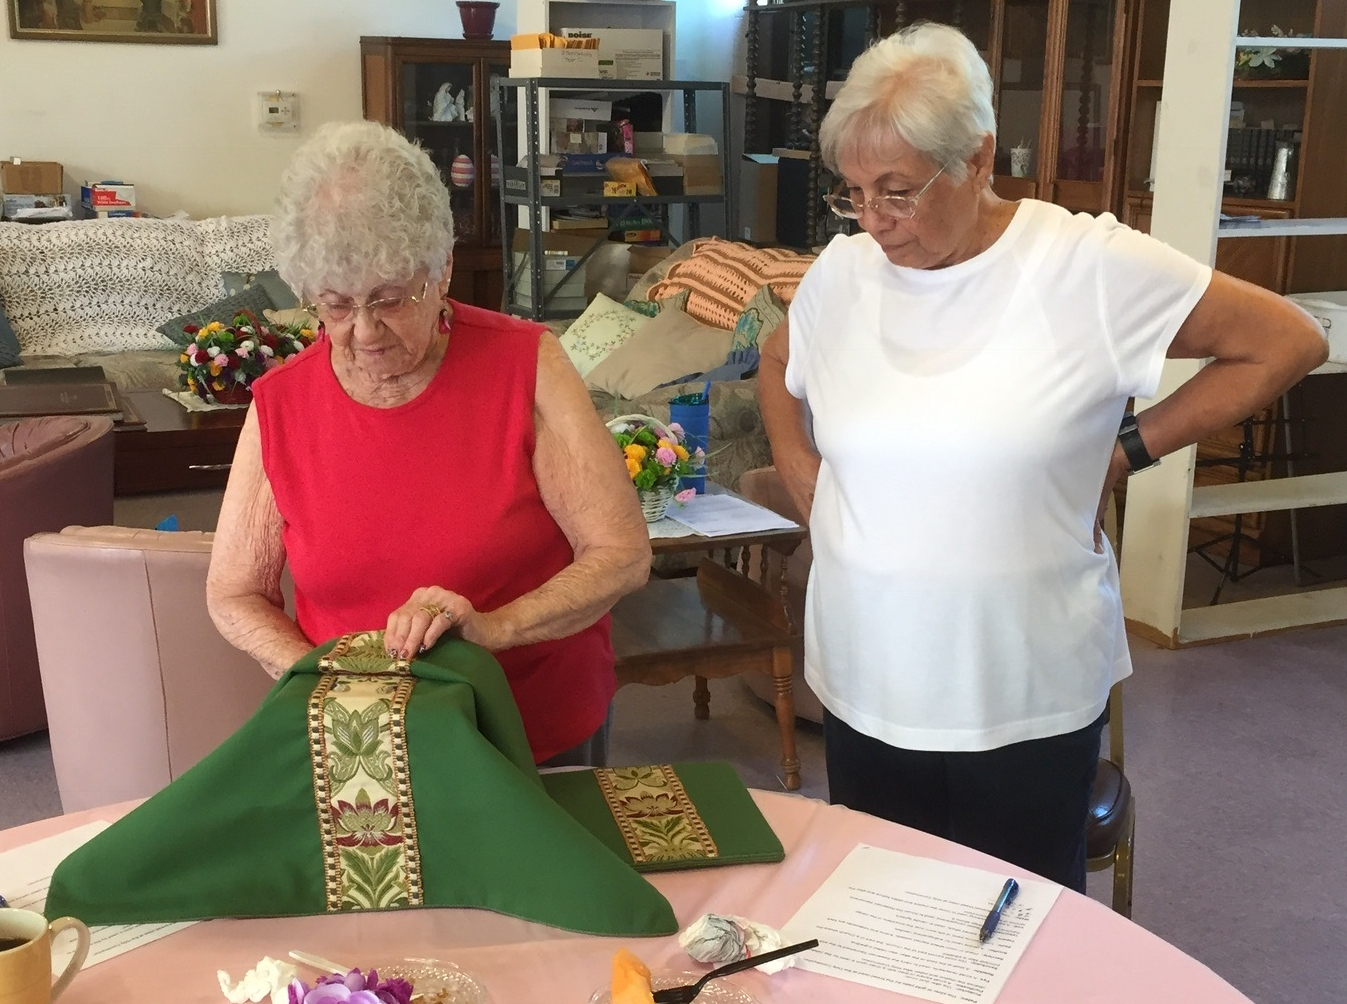 """Altar guild member shirley mosher practices setting """"the stack"""" that will be placed on the altar, under the watchful eye of Rose Applegate. The """"stack competition"""" was part of the recent St. James Altar Guild Games, designed to be a fun way to hone alter guild skill"""